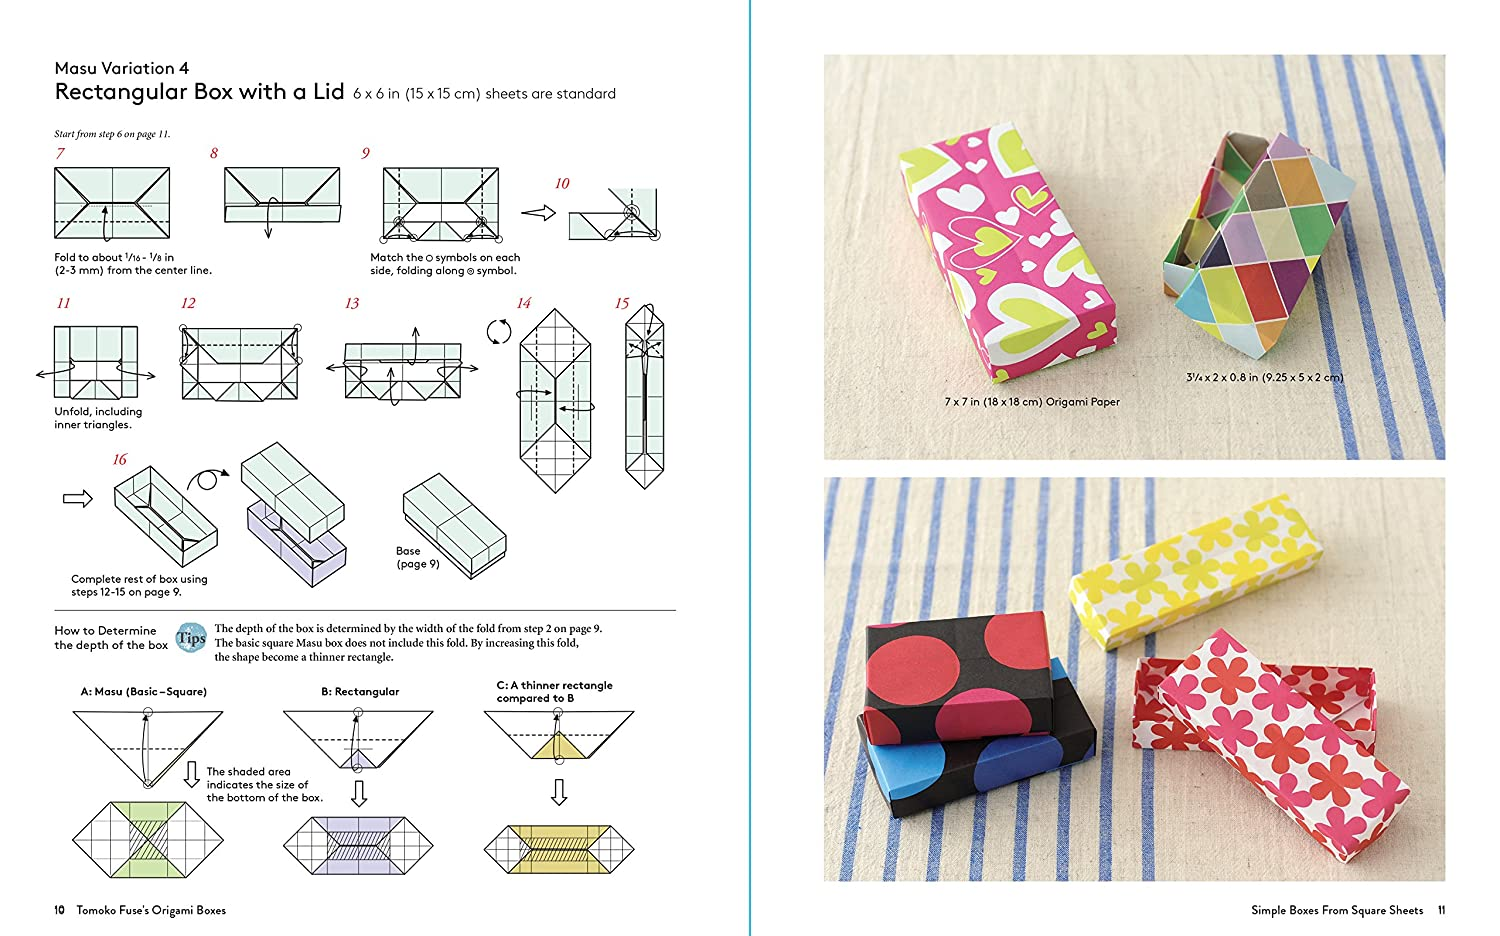 Tomoko Fuses Origami Boxes Book Fuse Author Hexagon Box Instructions Arts Crafts Sewing